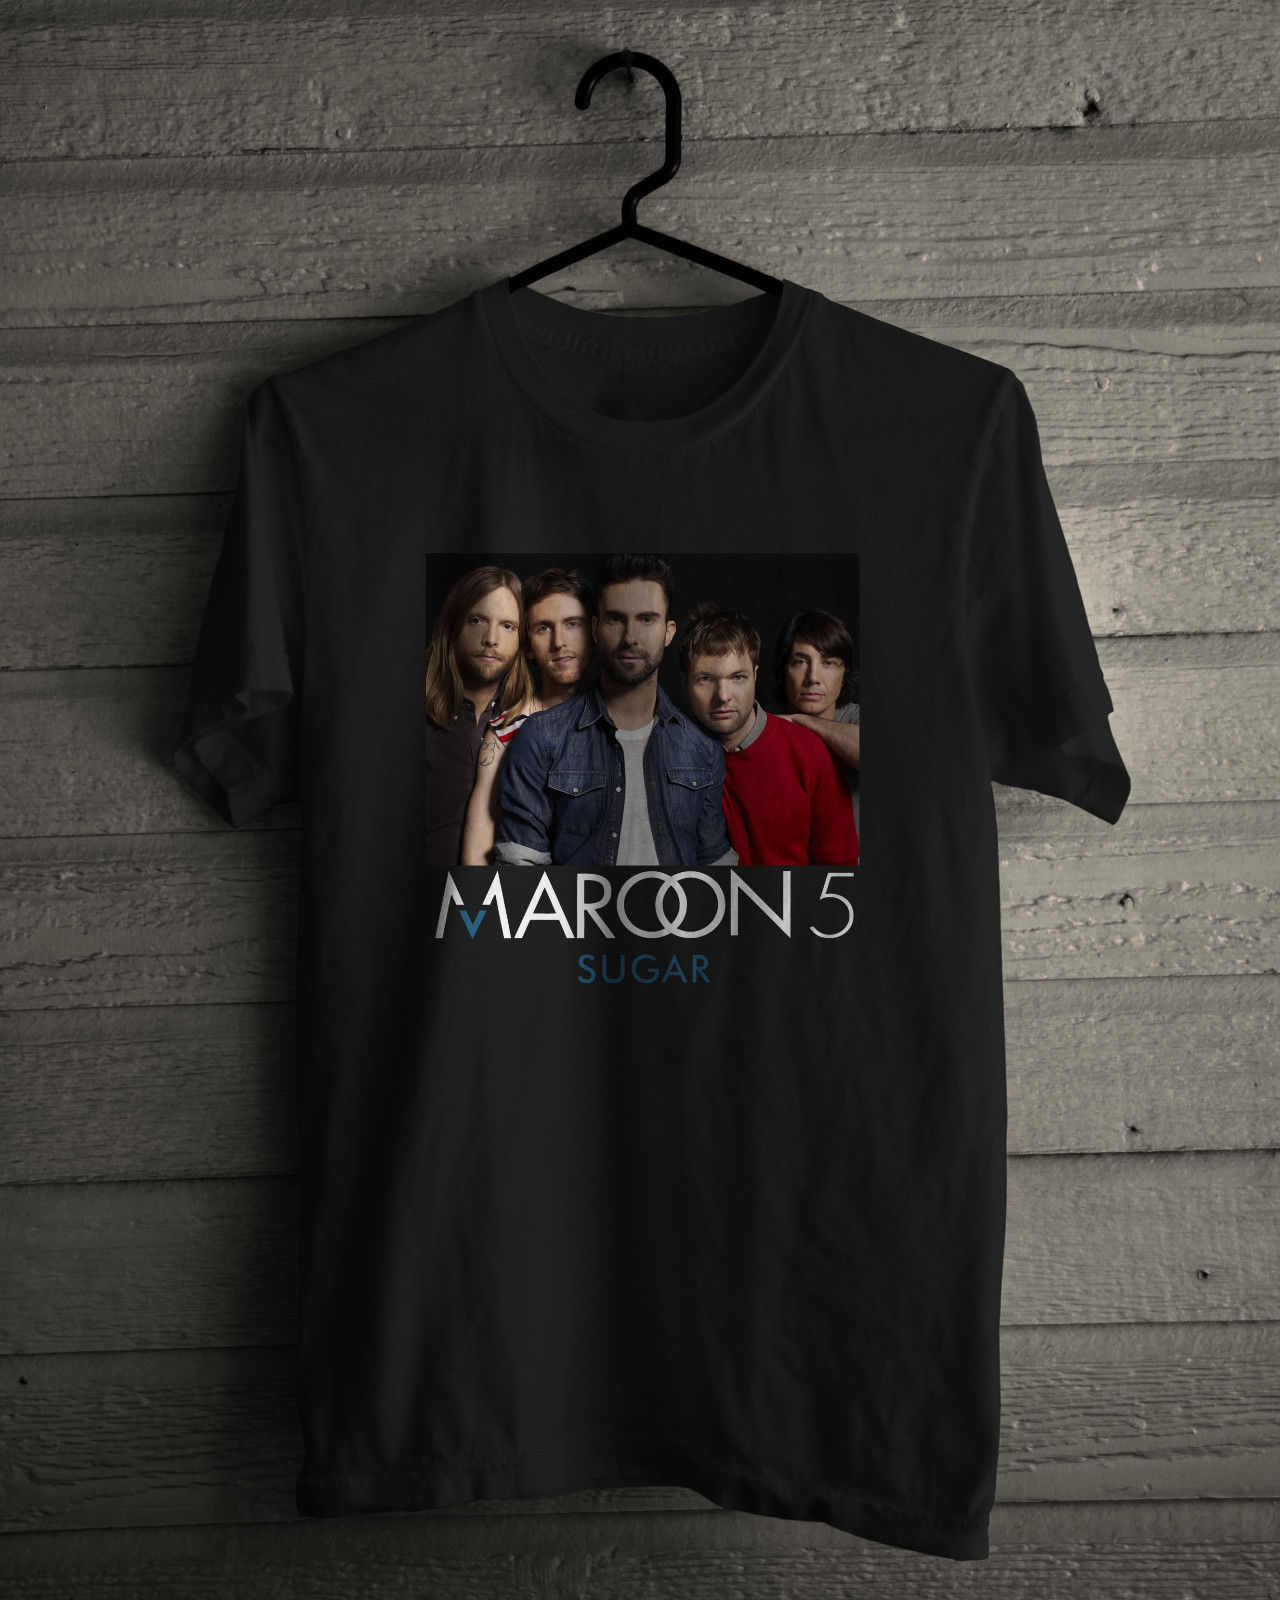 Maroon 5 T-Shirt, AKA Karas Flowers, American pop rock band, Sugar Black Tee